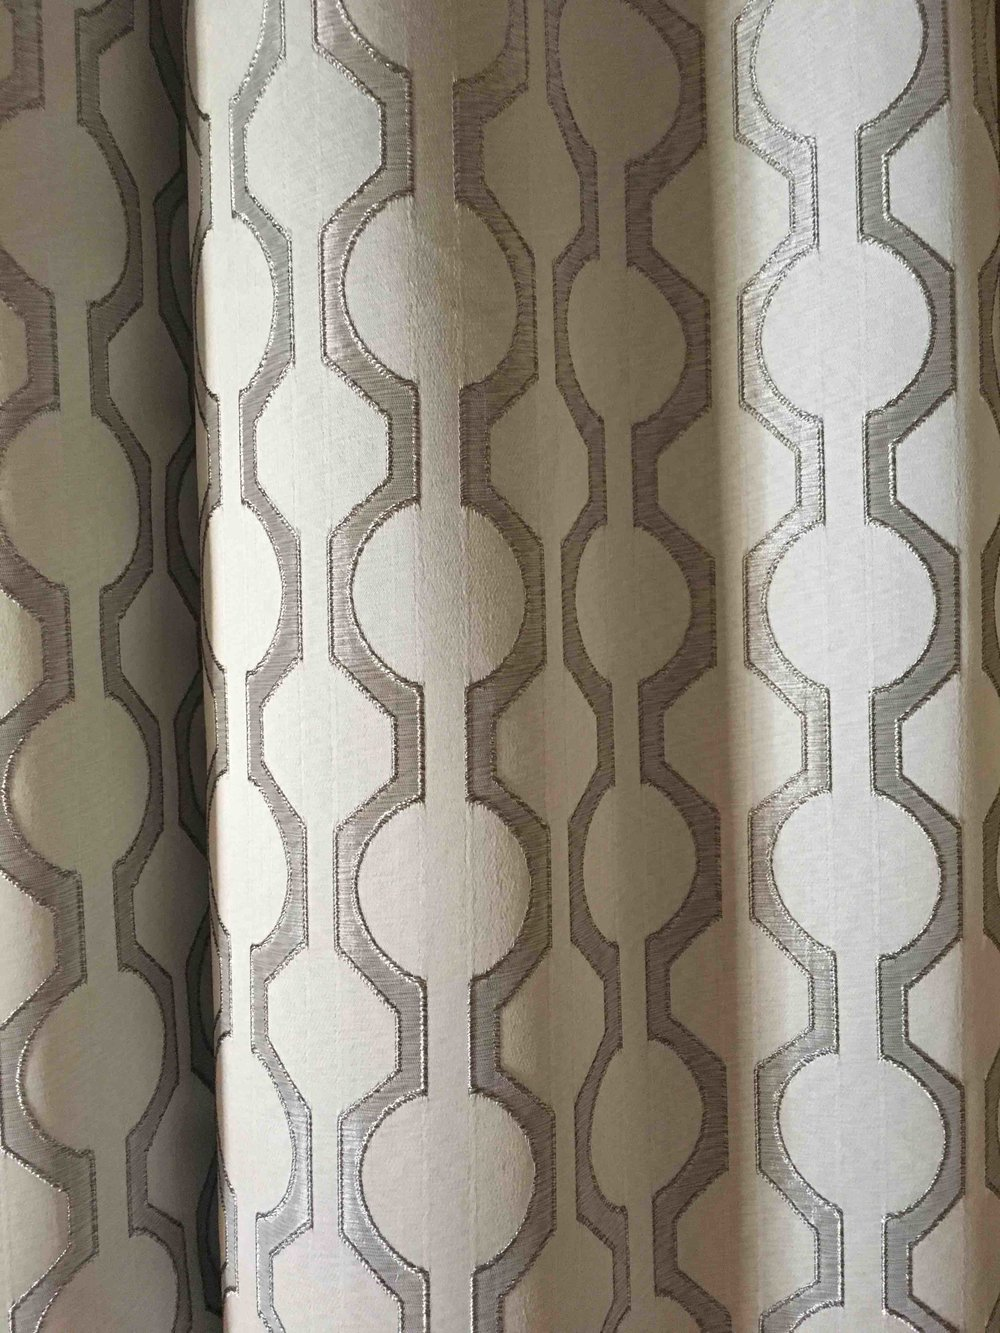 LP Patterned Curtains $120/set